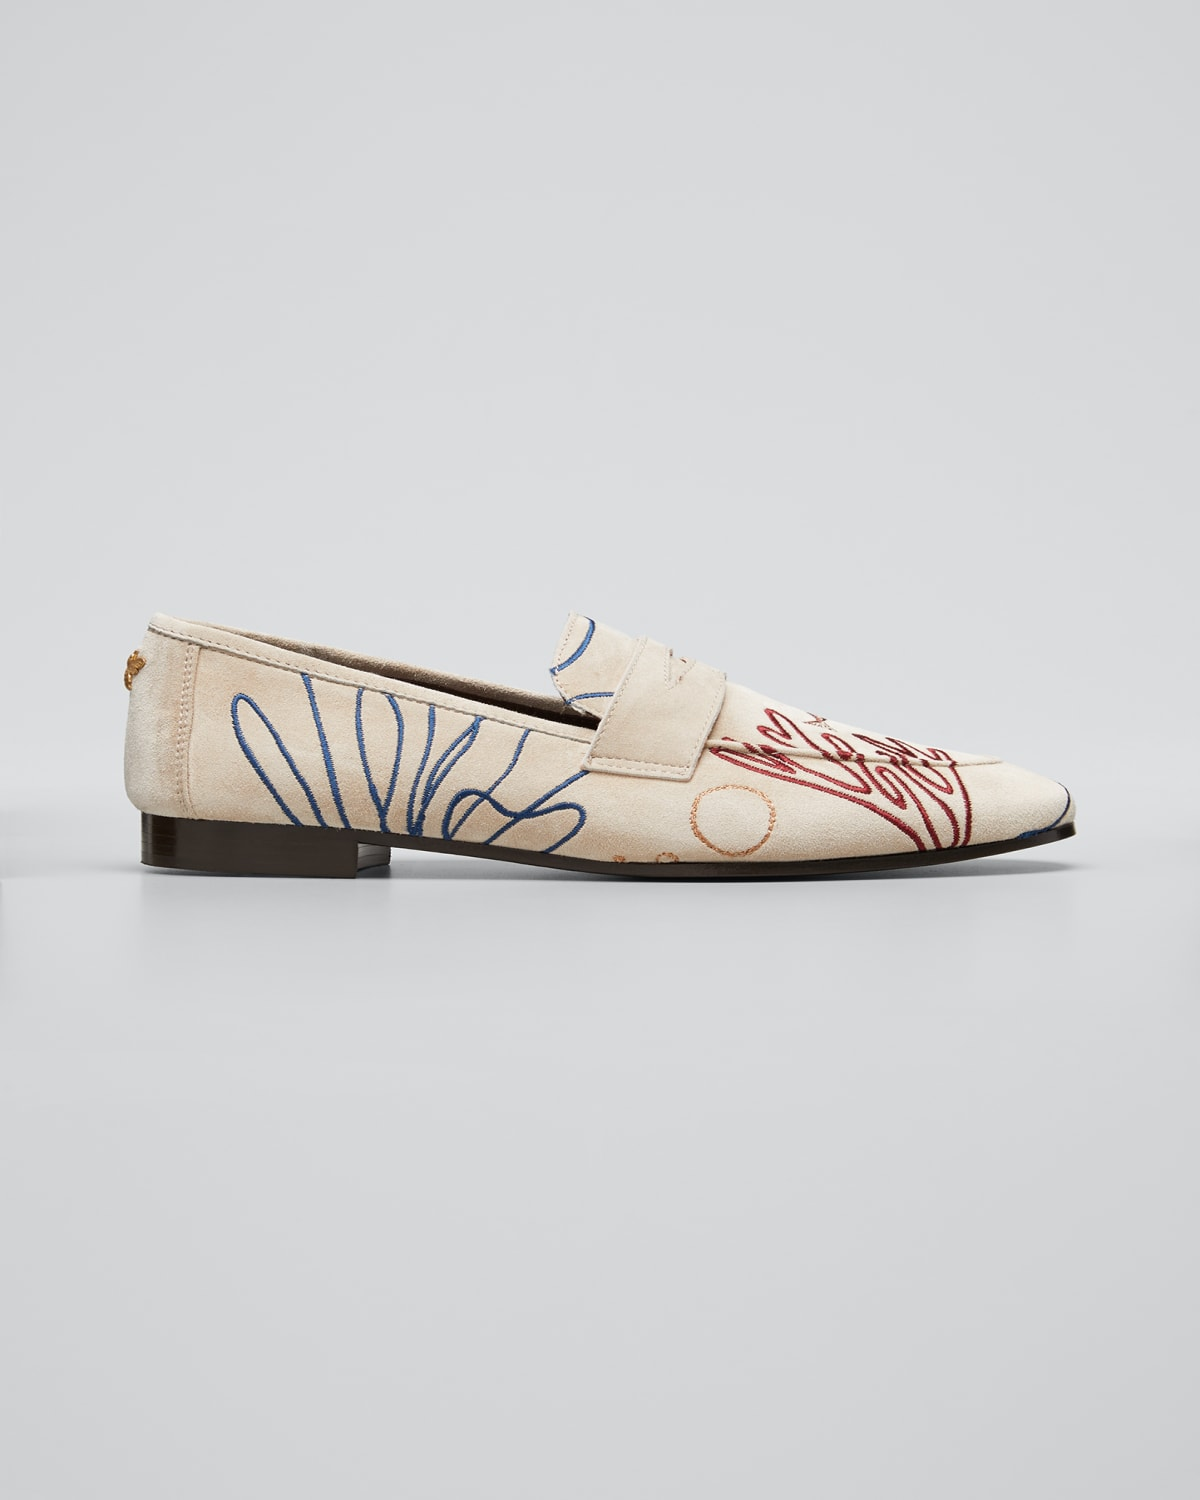 Flaneur Coral Reef Suede Loafers